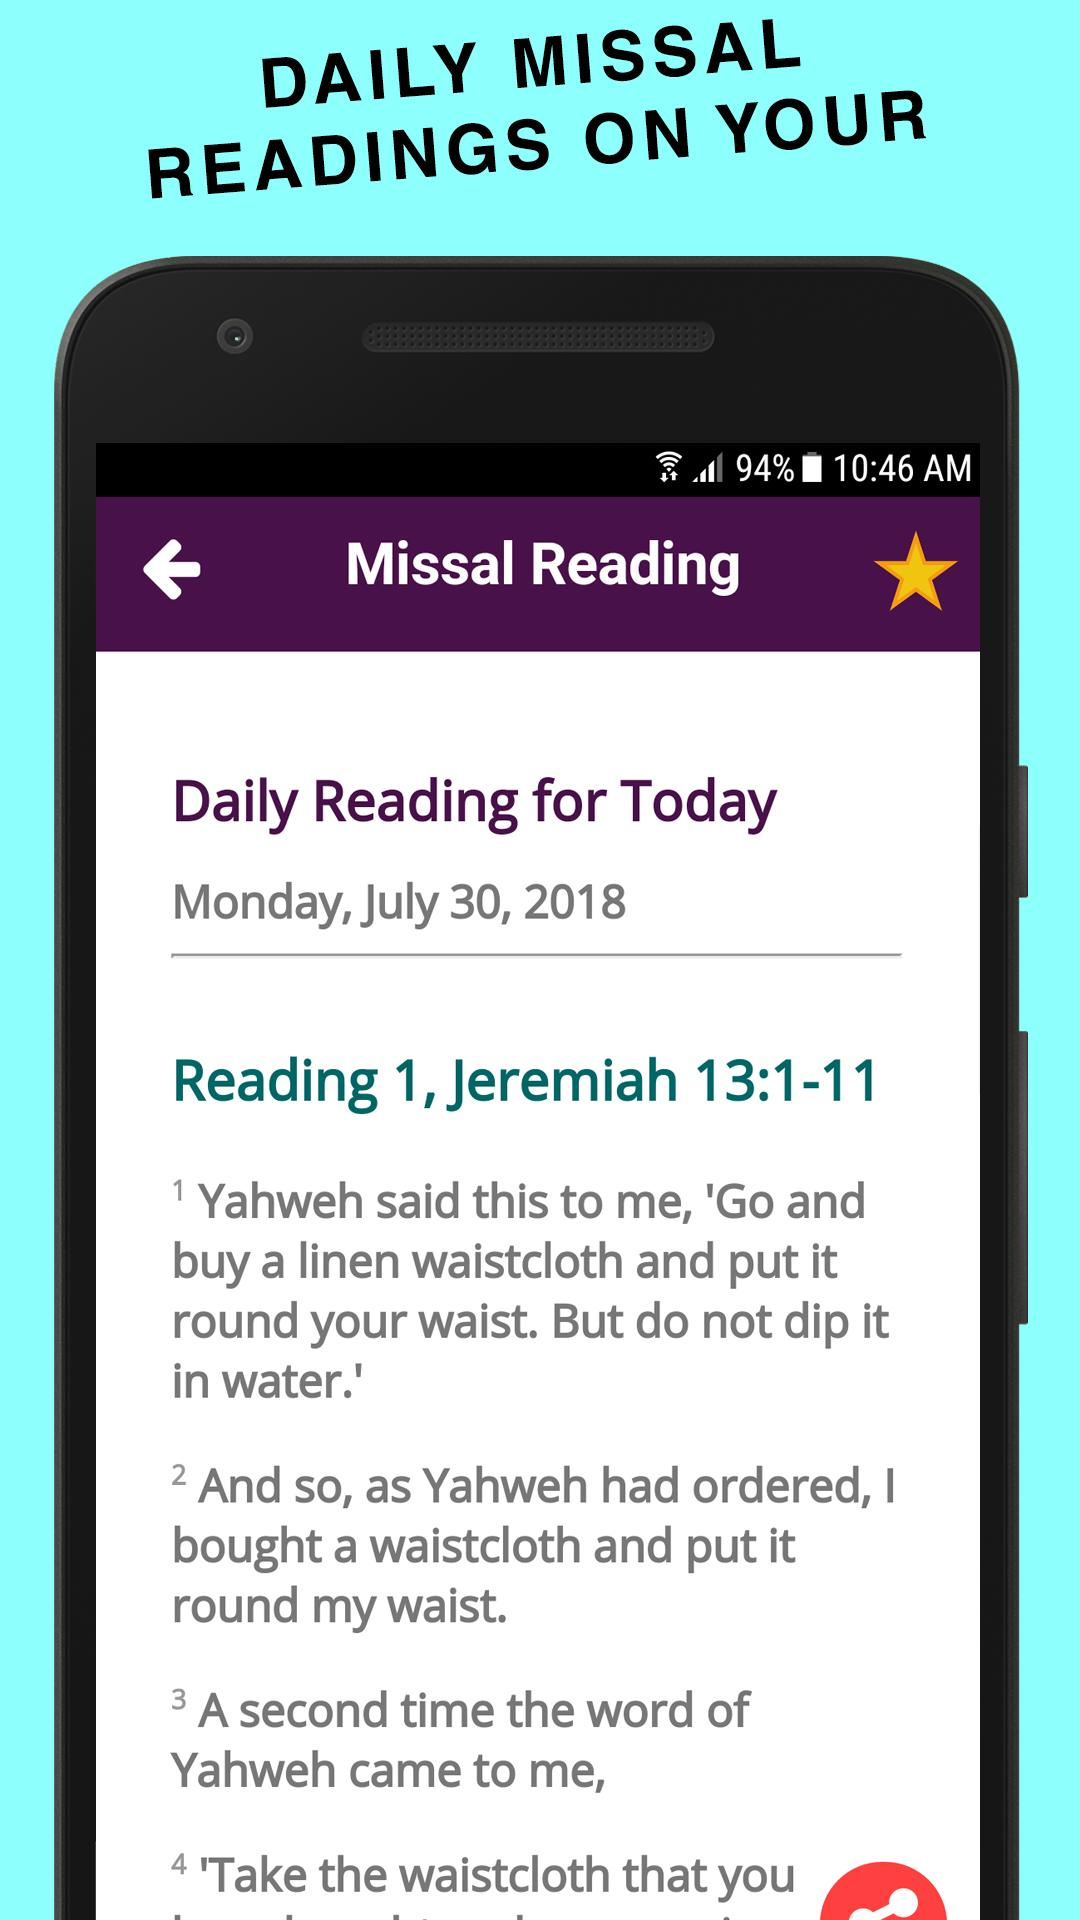 Catholic Daily Missal Readings (Free App) for Android - APK